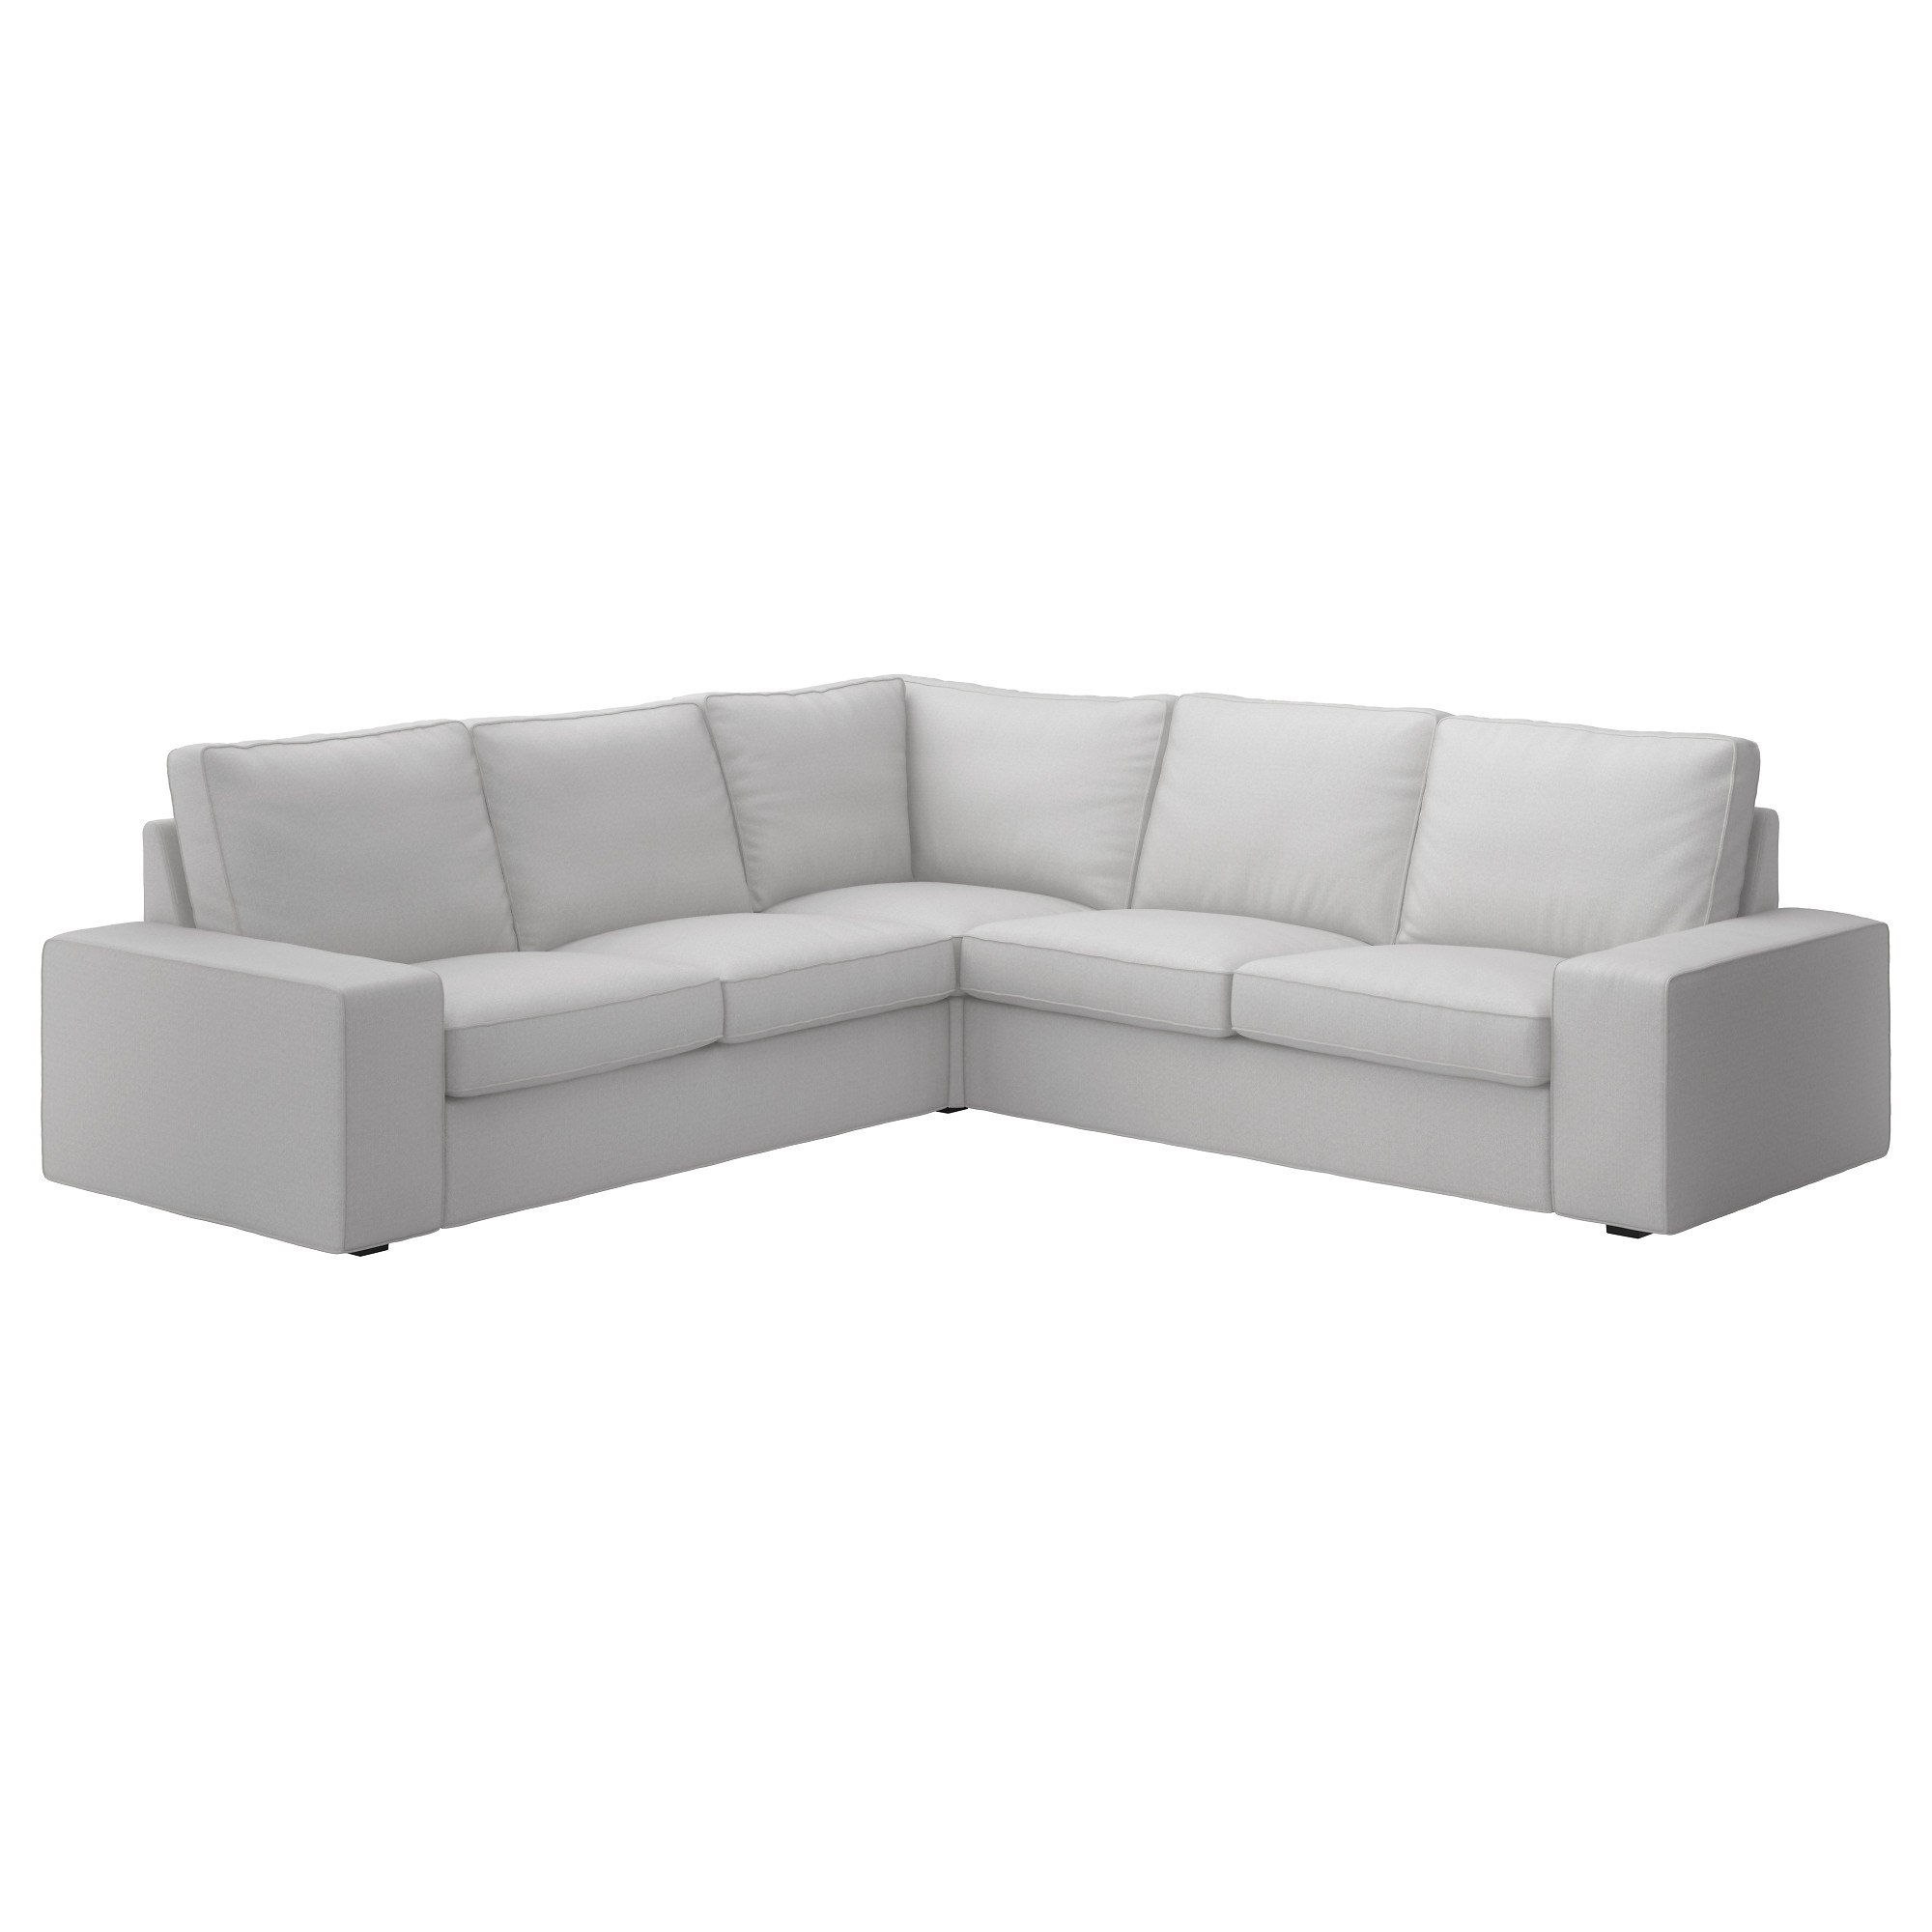 Sofas Ikea Lanzarote Kivik Corner Sofa 4 Seats With Orrsta Light Grey Cover